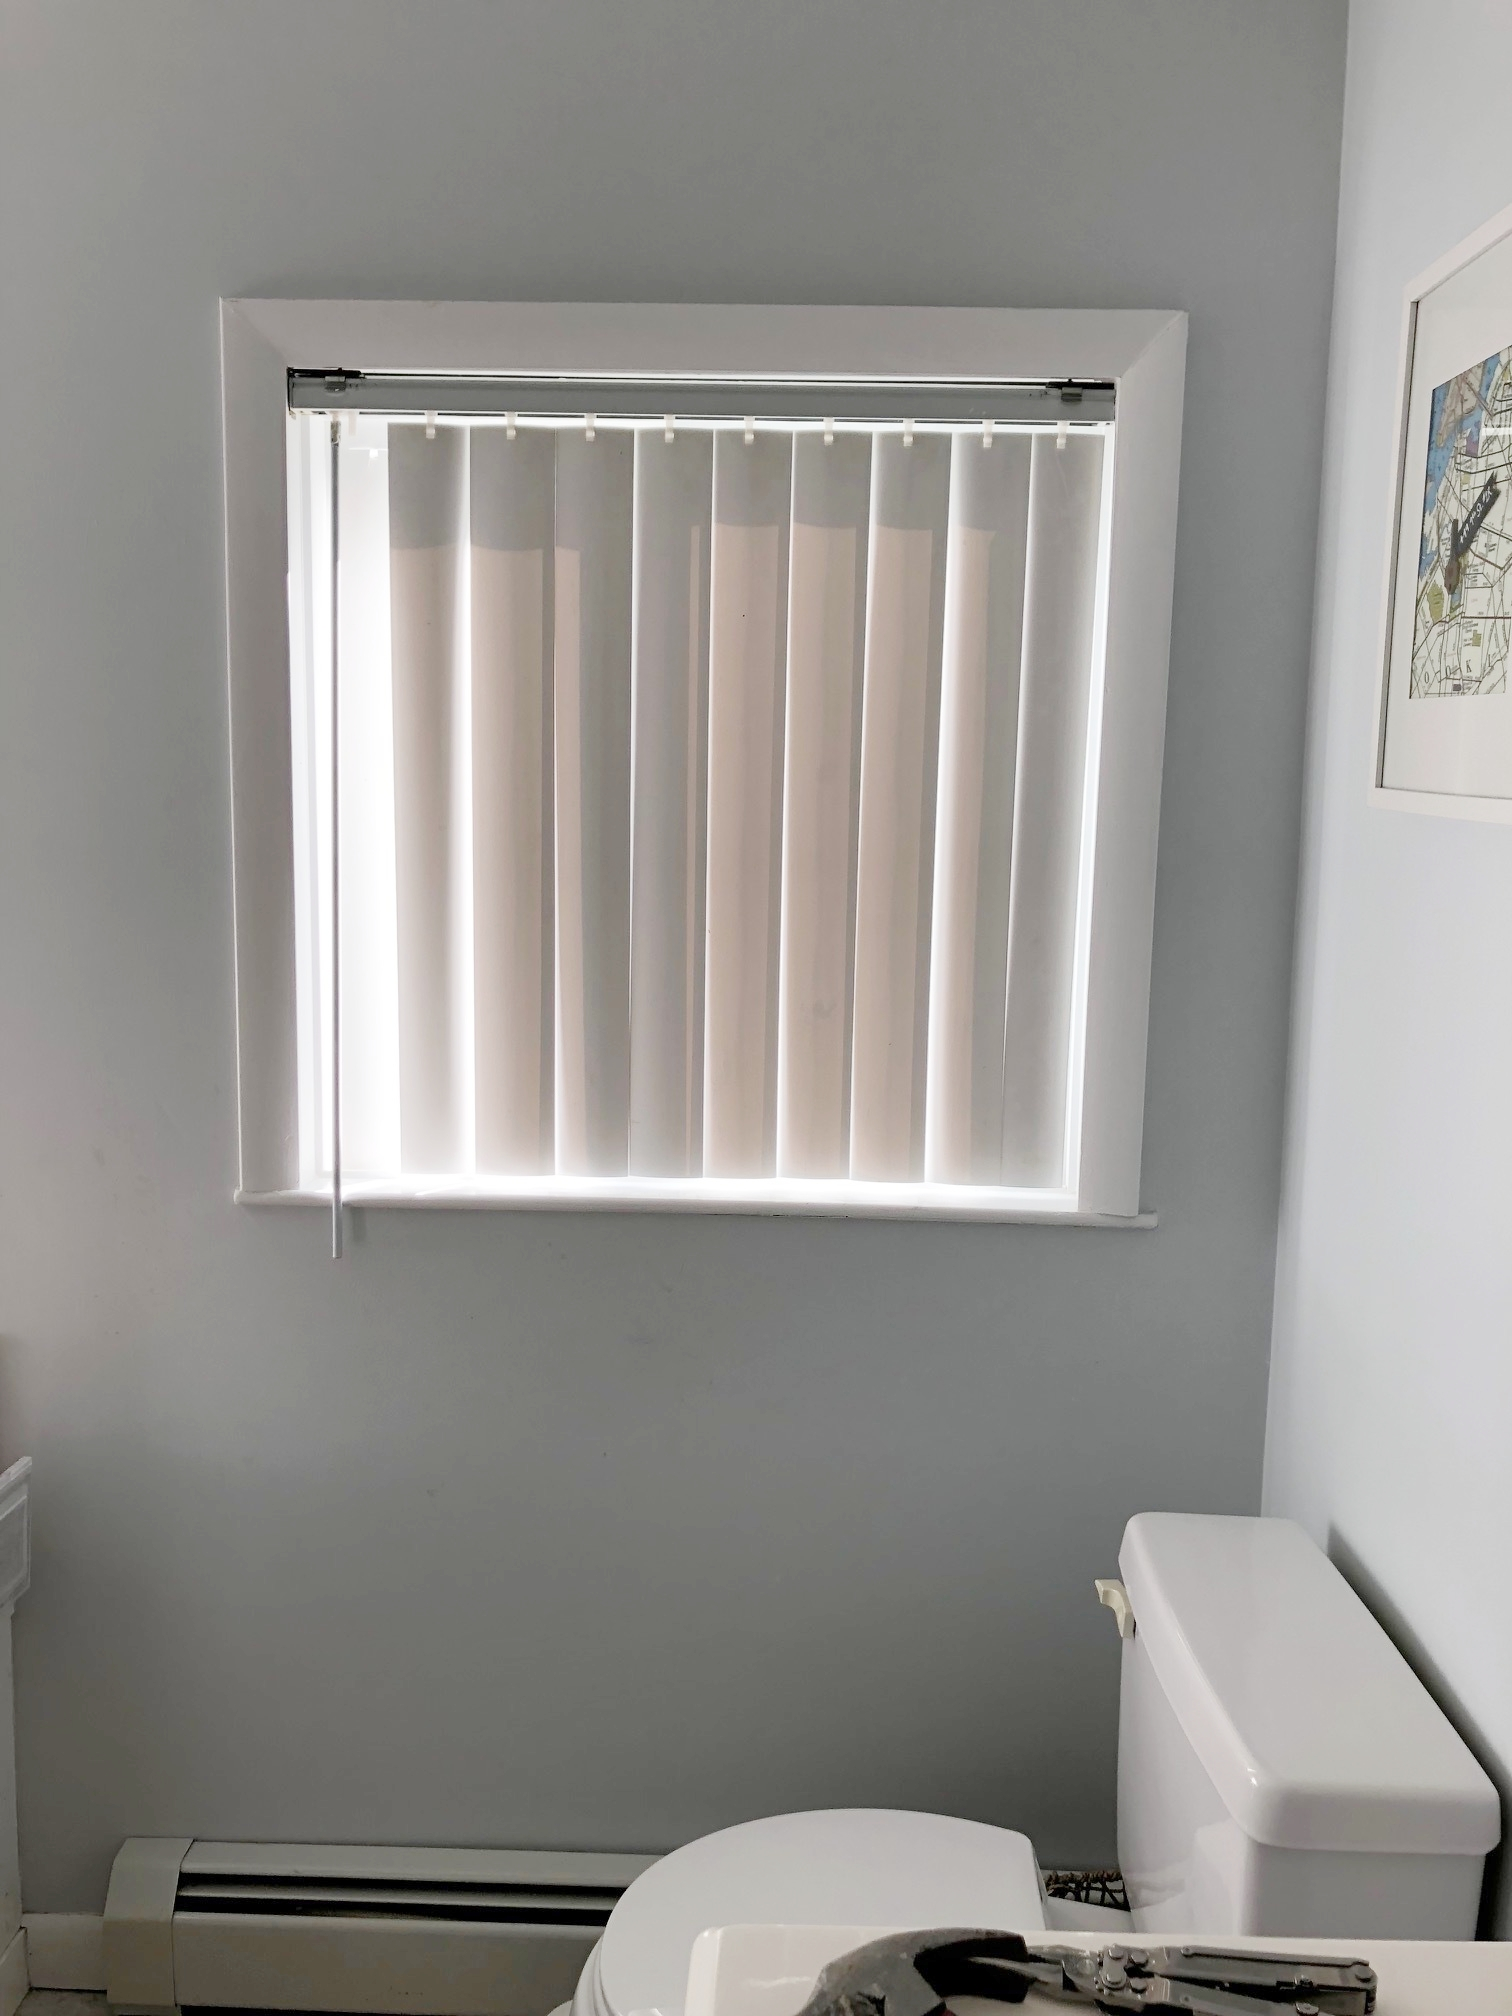 Gray Oak Studio - 2 Days 200 Dollars Challenge - Window Treatment Transformation